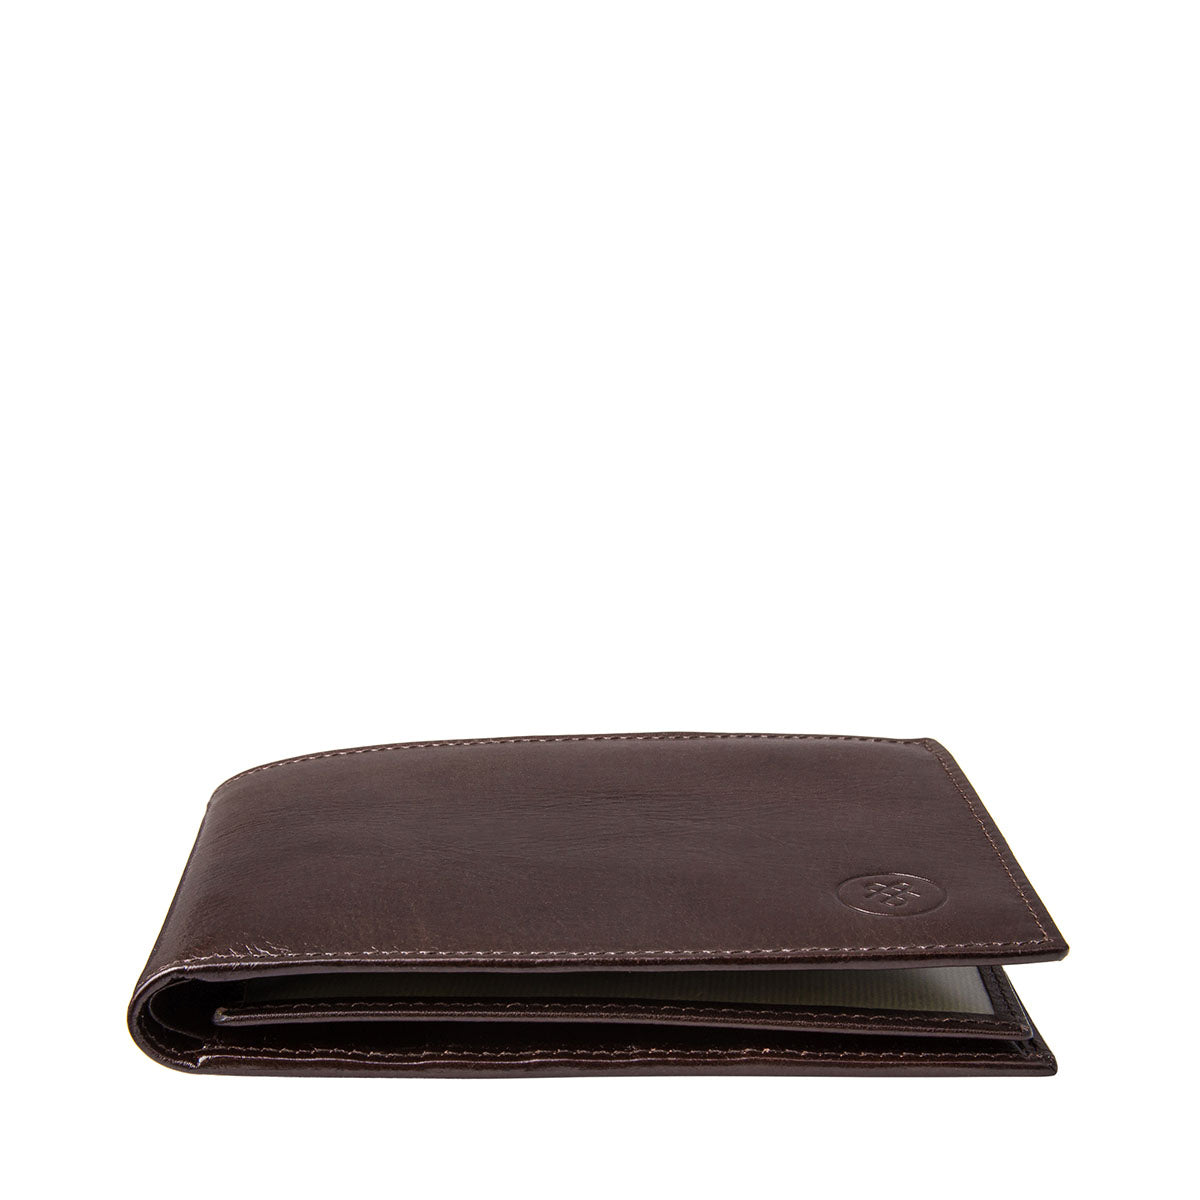 Image 6 of the 'Gallucio' Brown Veg-Tanned Leather Tri Fold Wallet